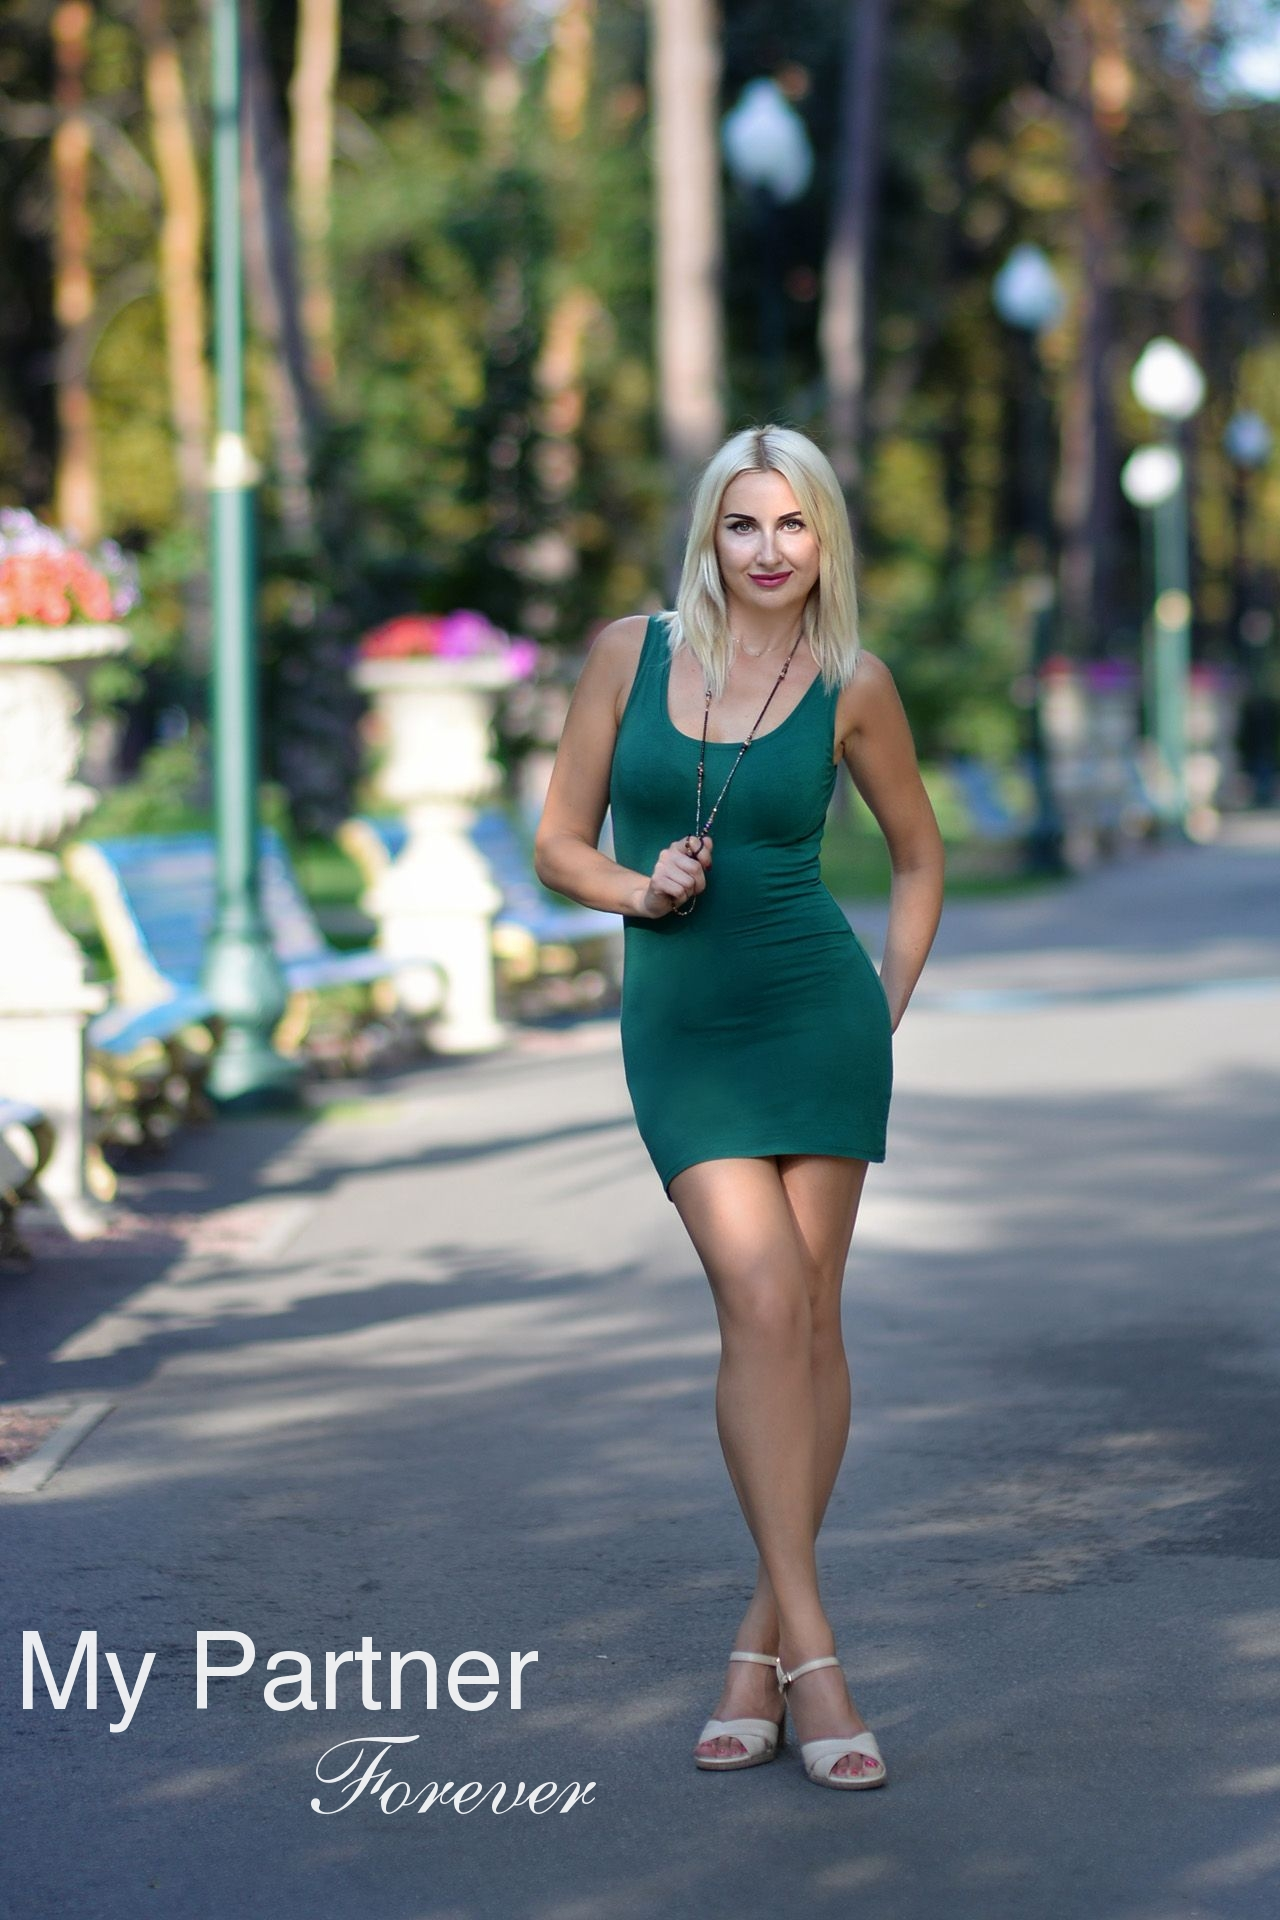 Dating Service to Meet Sexy Ukrainian Woman Marina from Kharkov, Ukraine